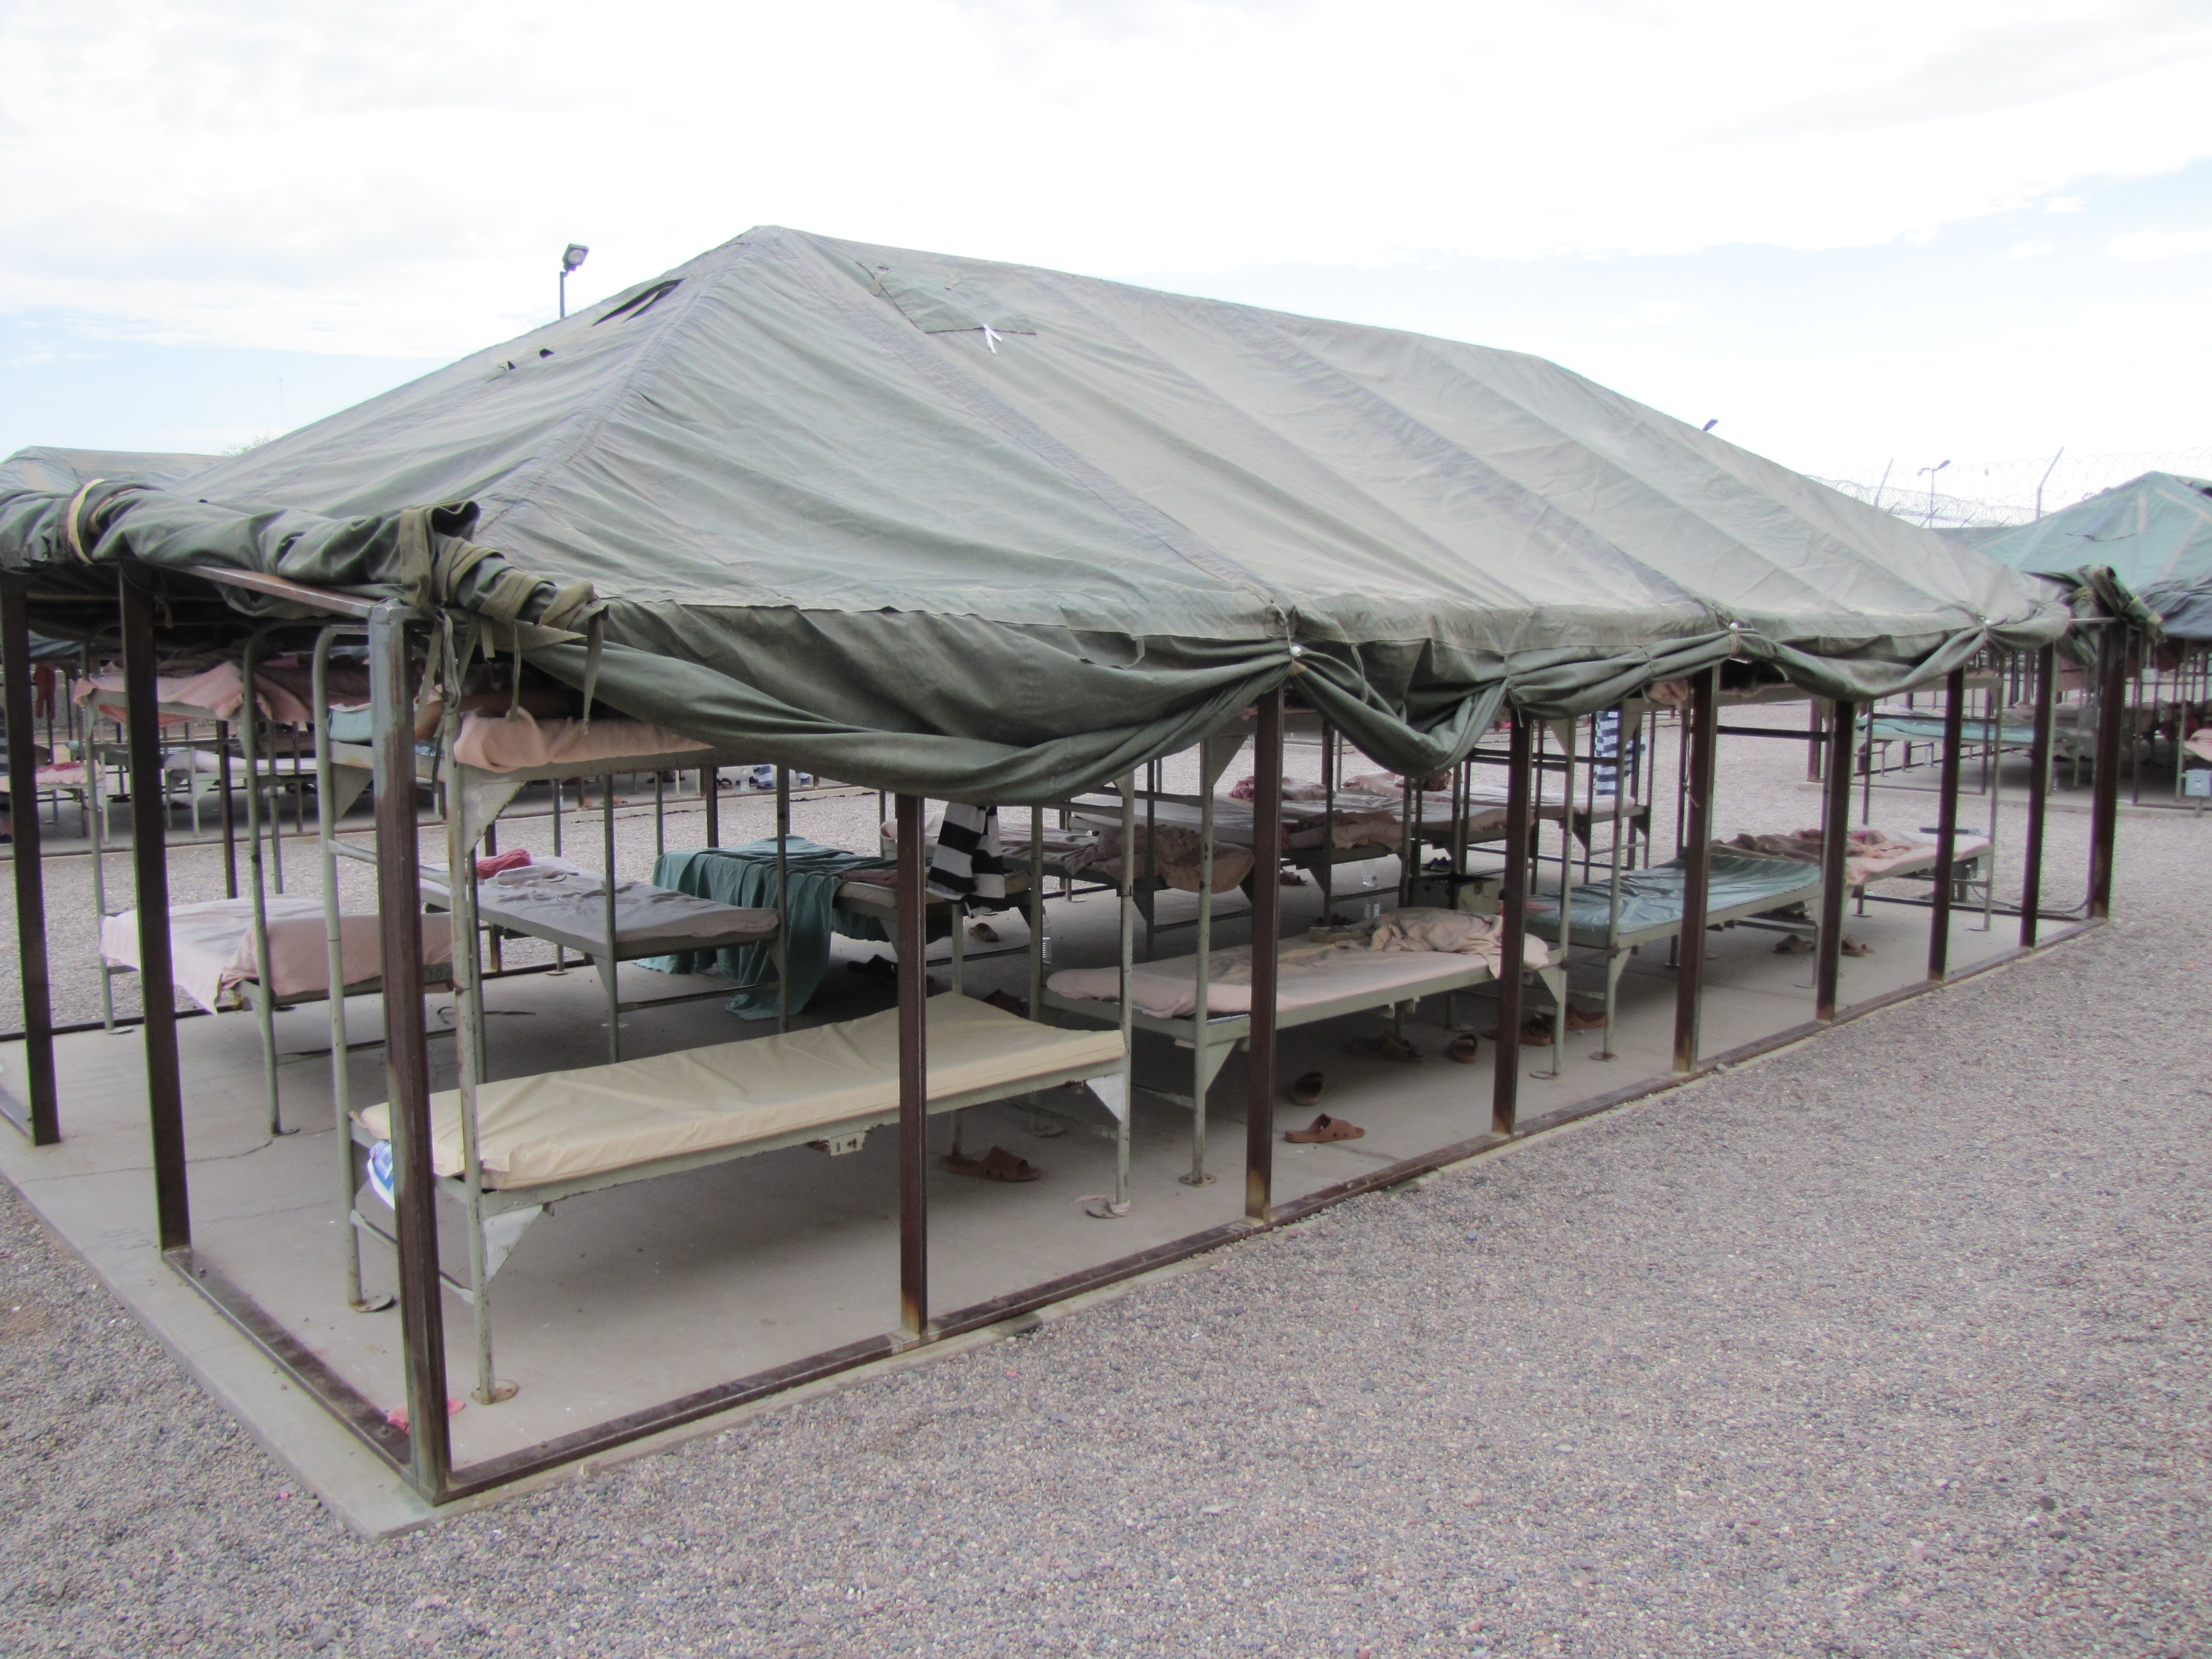 tent city jail word The new sheriff in maricopa county, arizona, says he's closing the outdoor jail  because it's not cost-effective or a  the infamous 'tent city' jail will shut down   0:42 walt disney word workers dressed as movie characters.